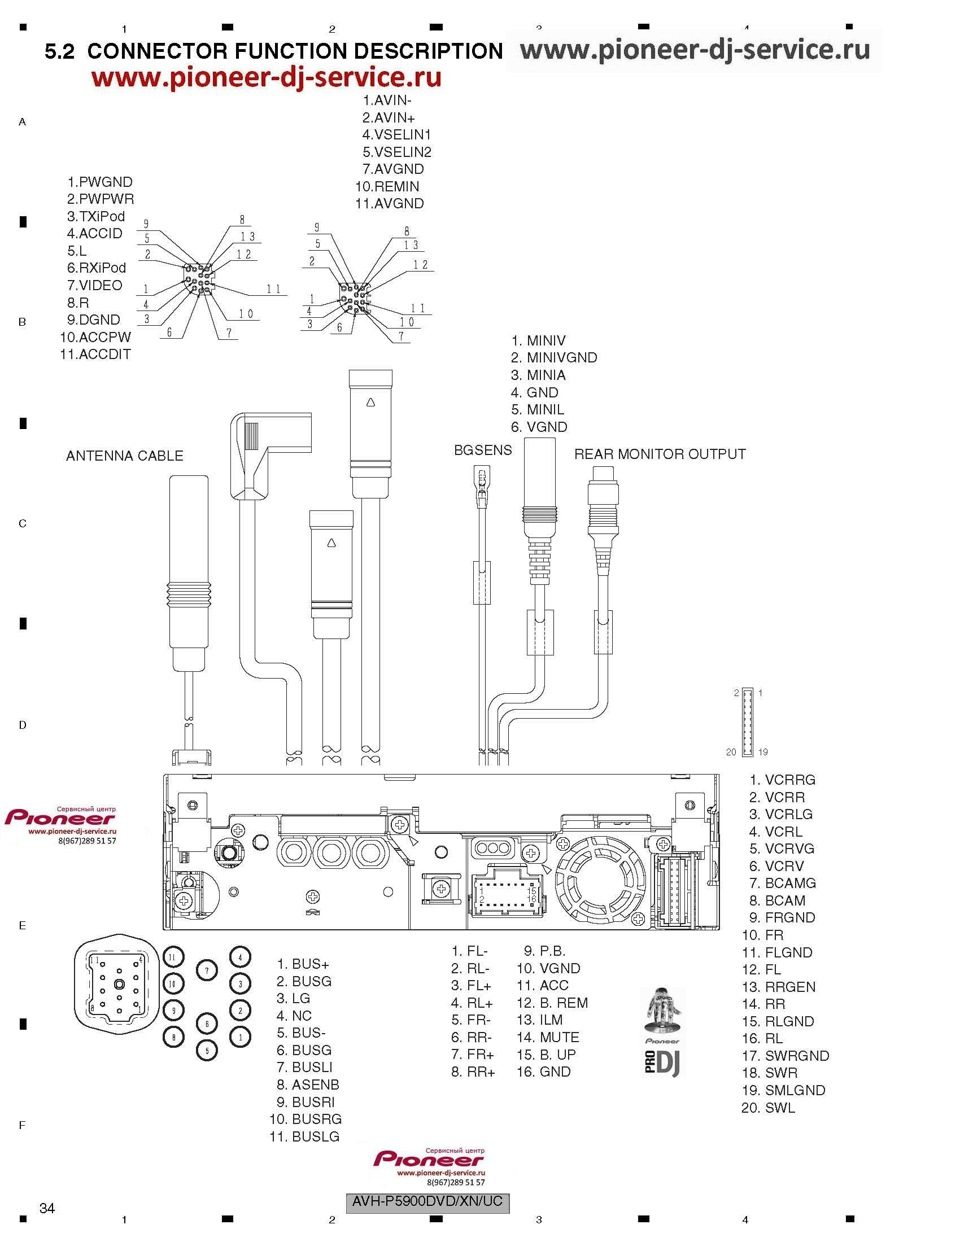 Pioneer Avh P5900Dvd Wiring Diagram - Great Installation Of Wiring - Pioneer Avh X1500Dvd Wiring Diagram